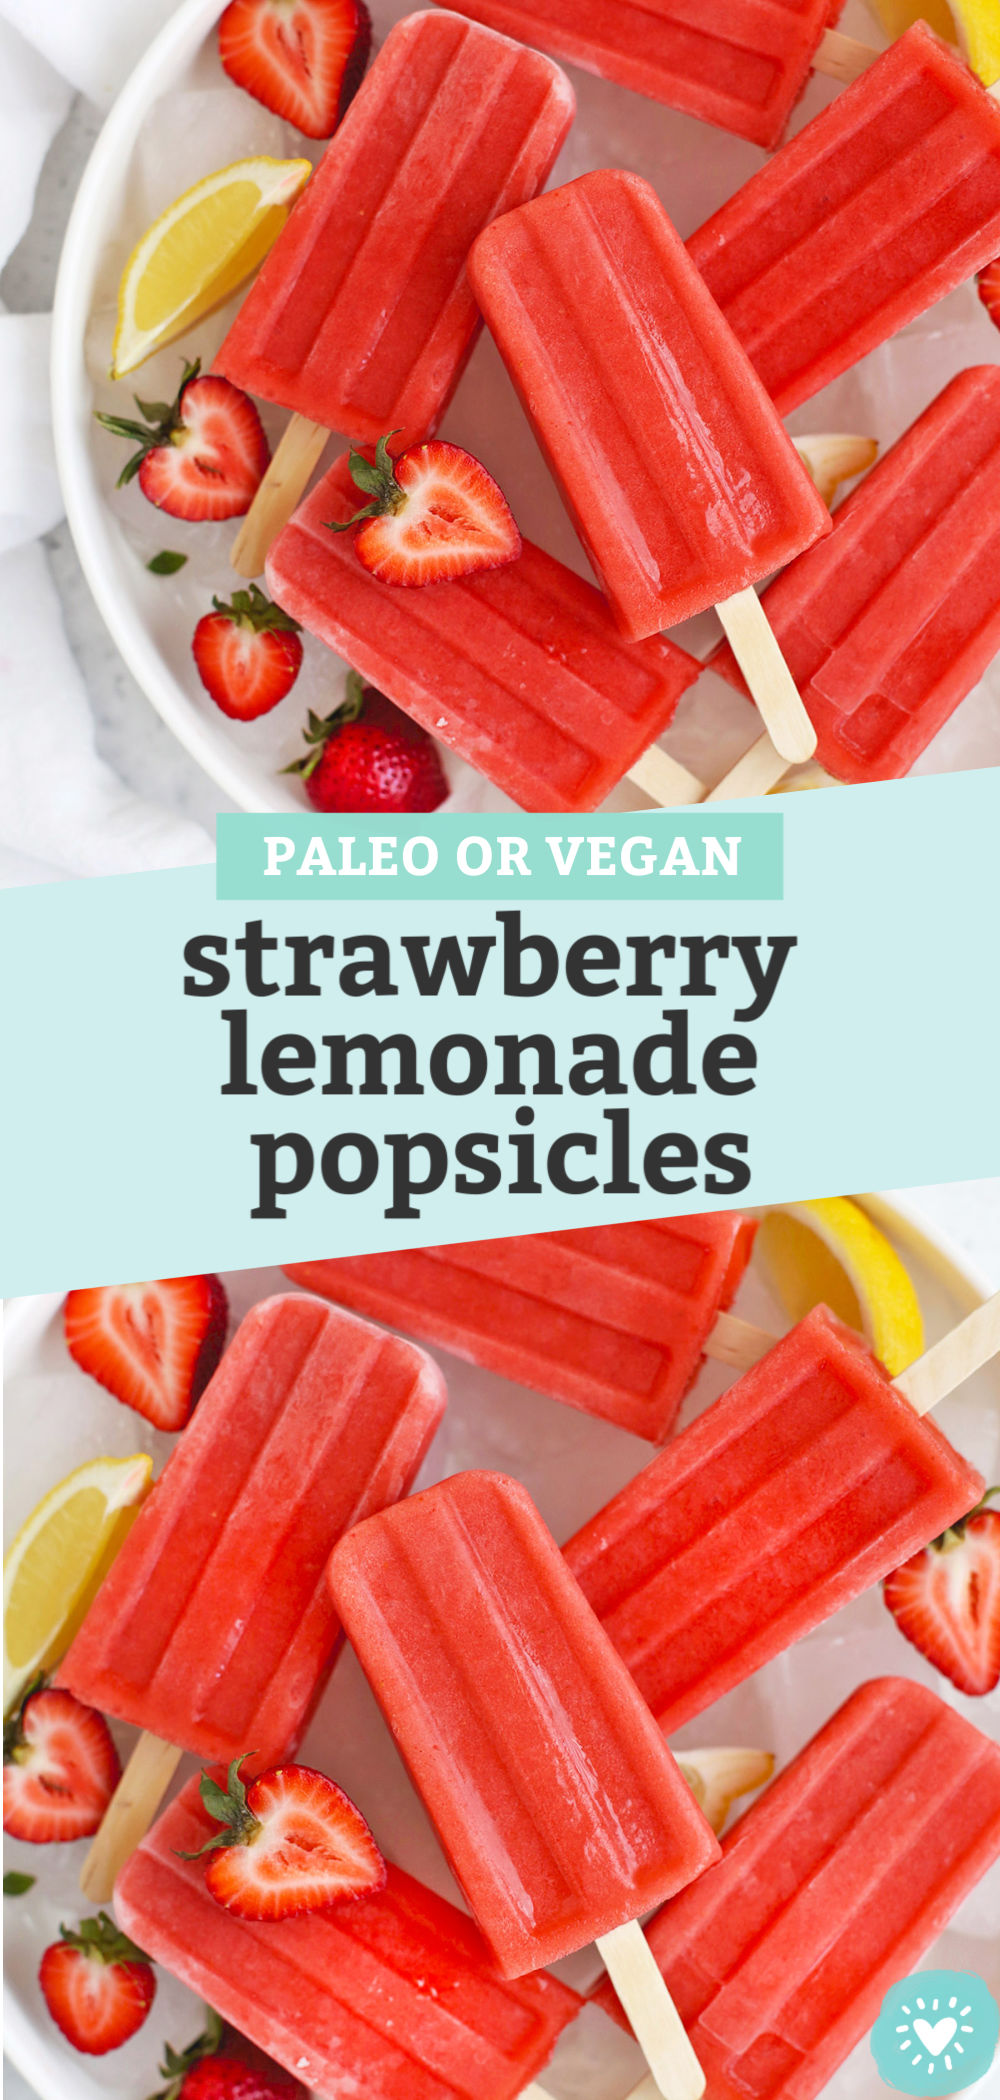 Strawberry Lemonade Popsicles from One Lovely Life